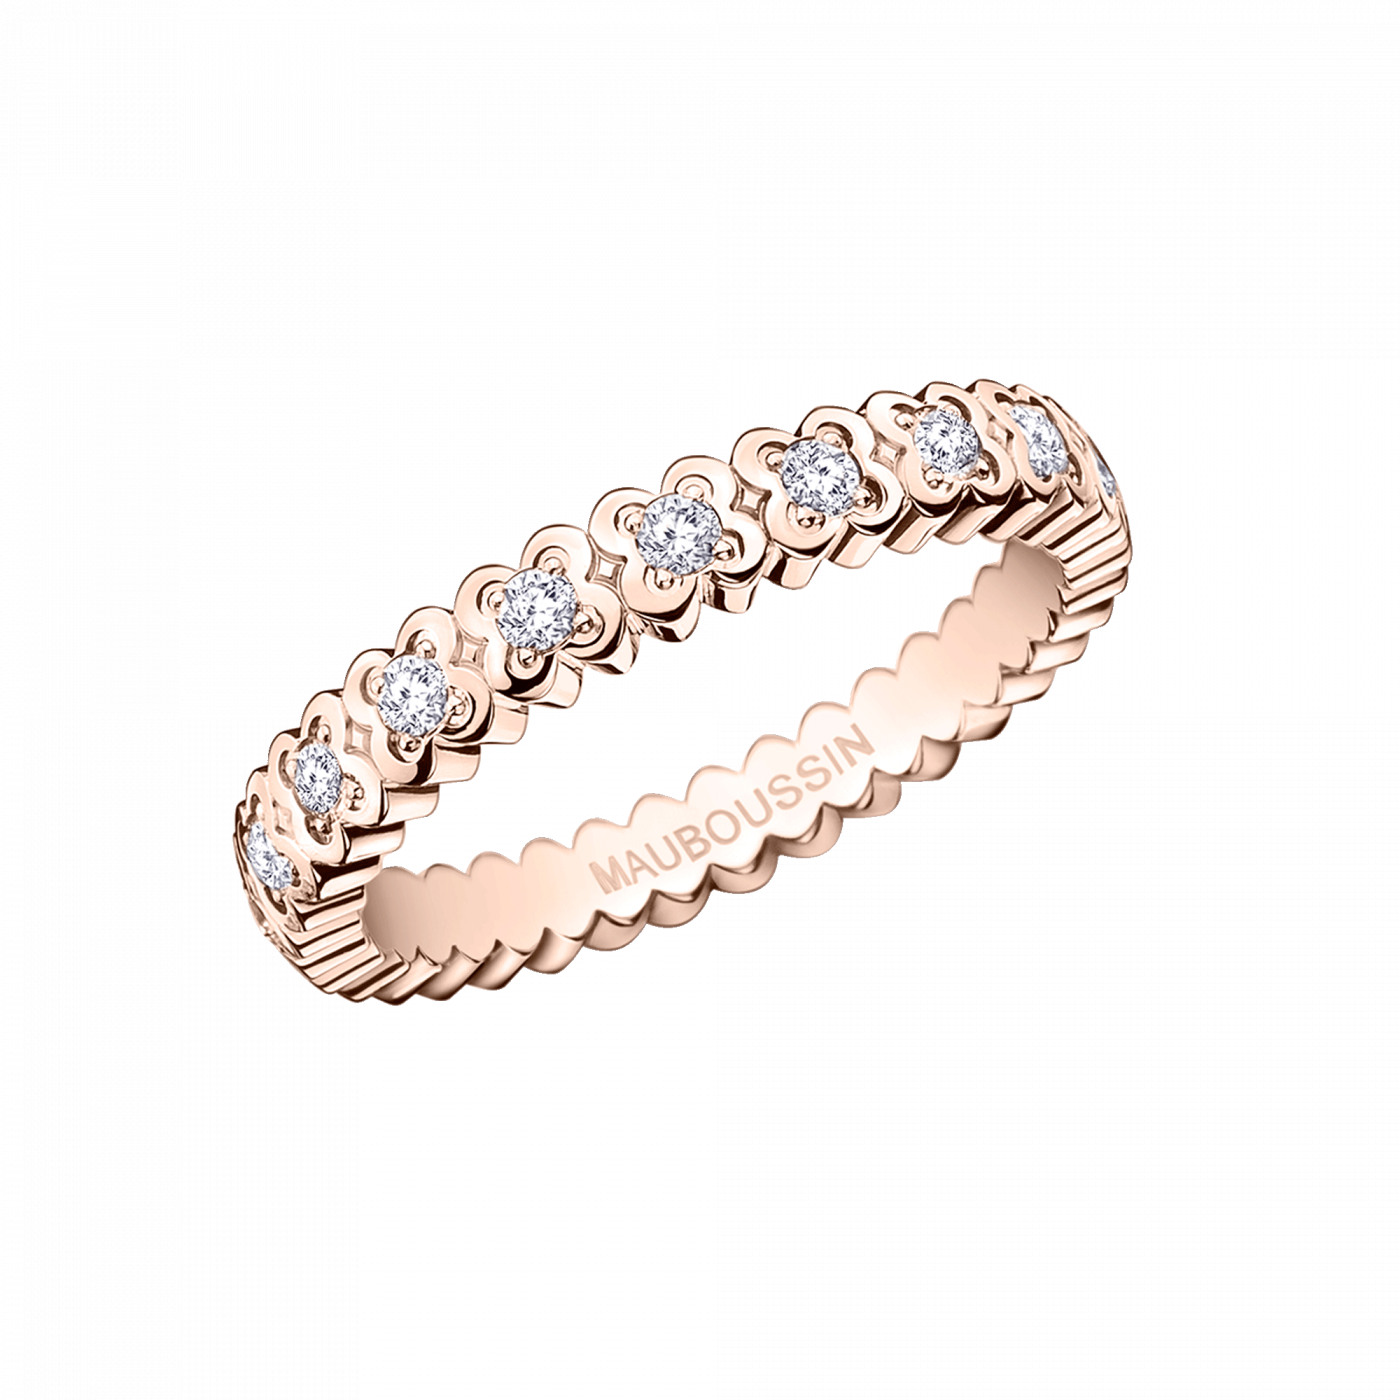 #Mauboussin #Bague #Alliance #Weddingband #diamants #Bridal #Rosegold